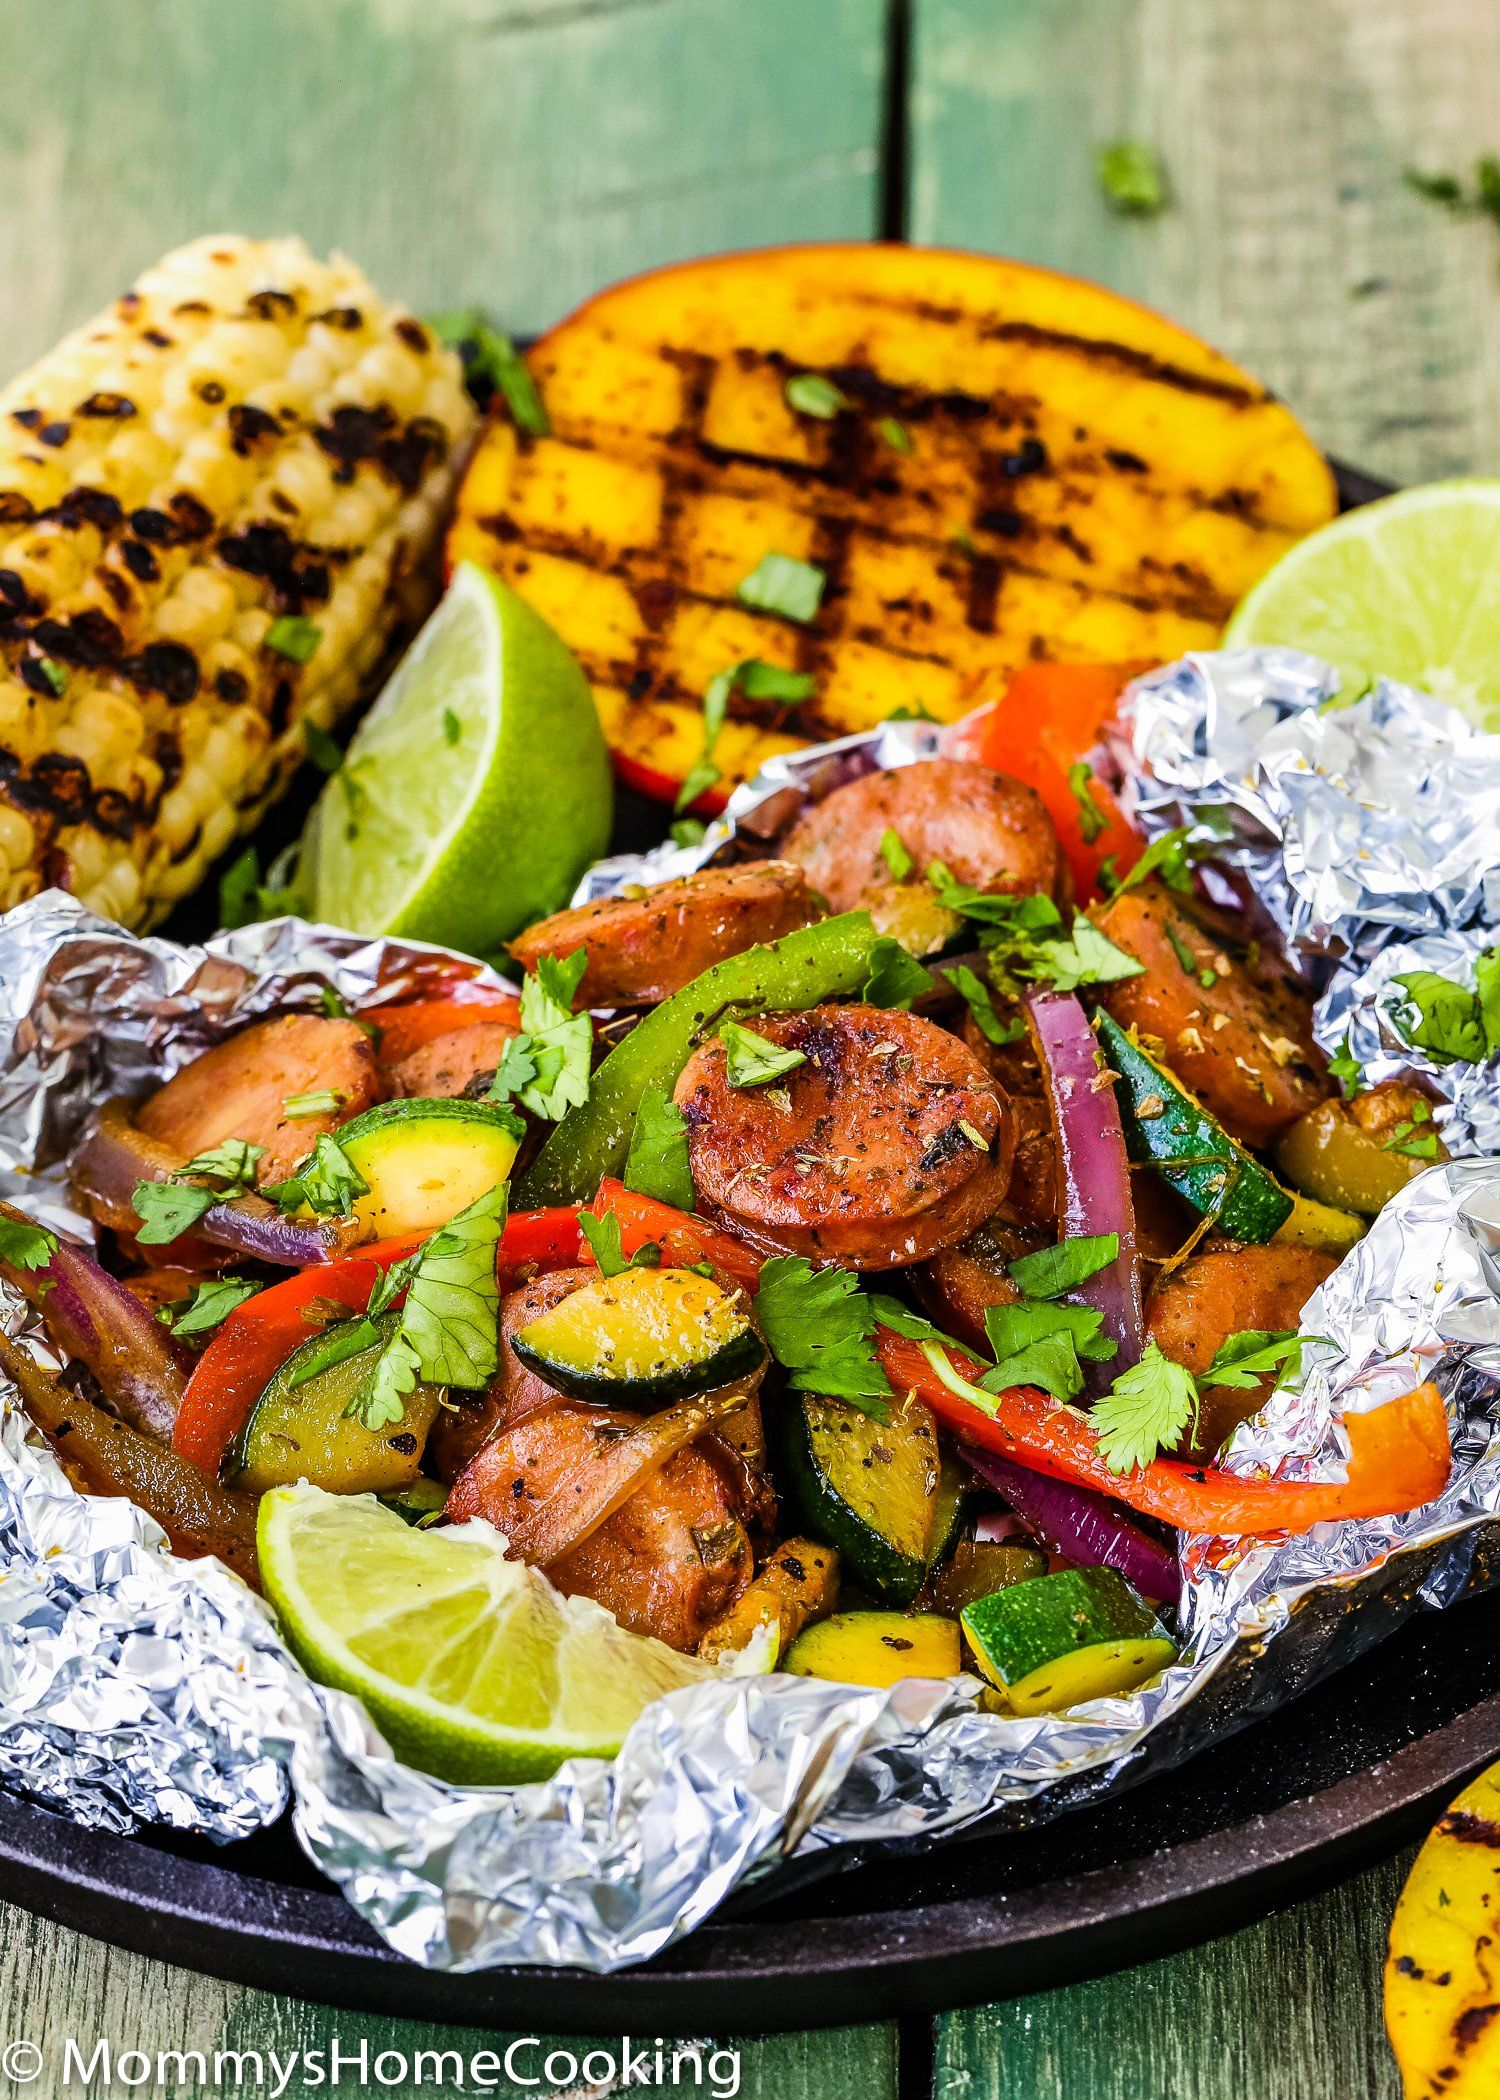 Easy sausage and veggies foil packets with grilled